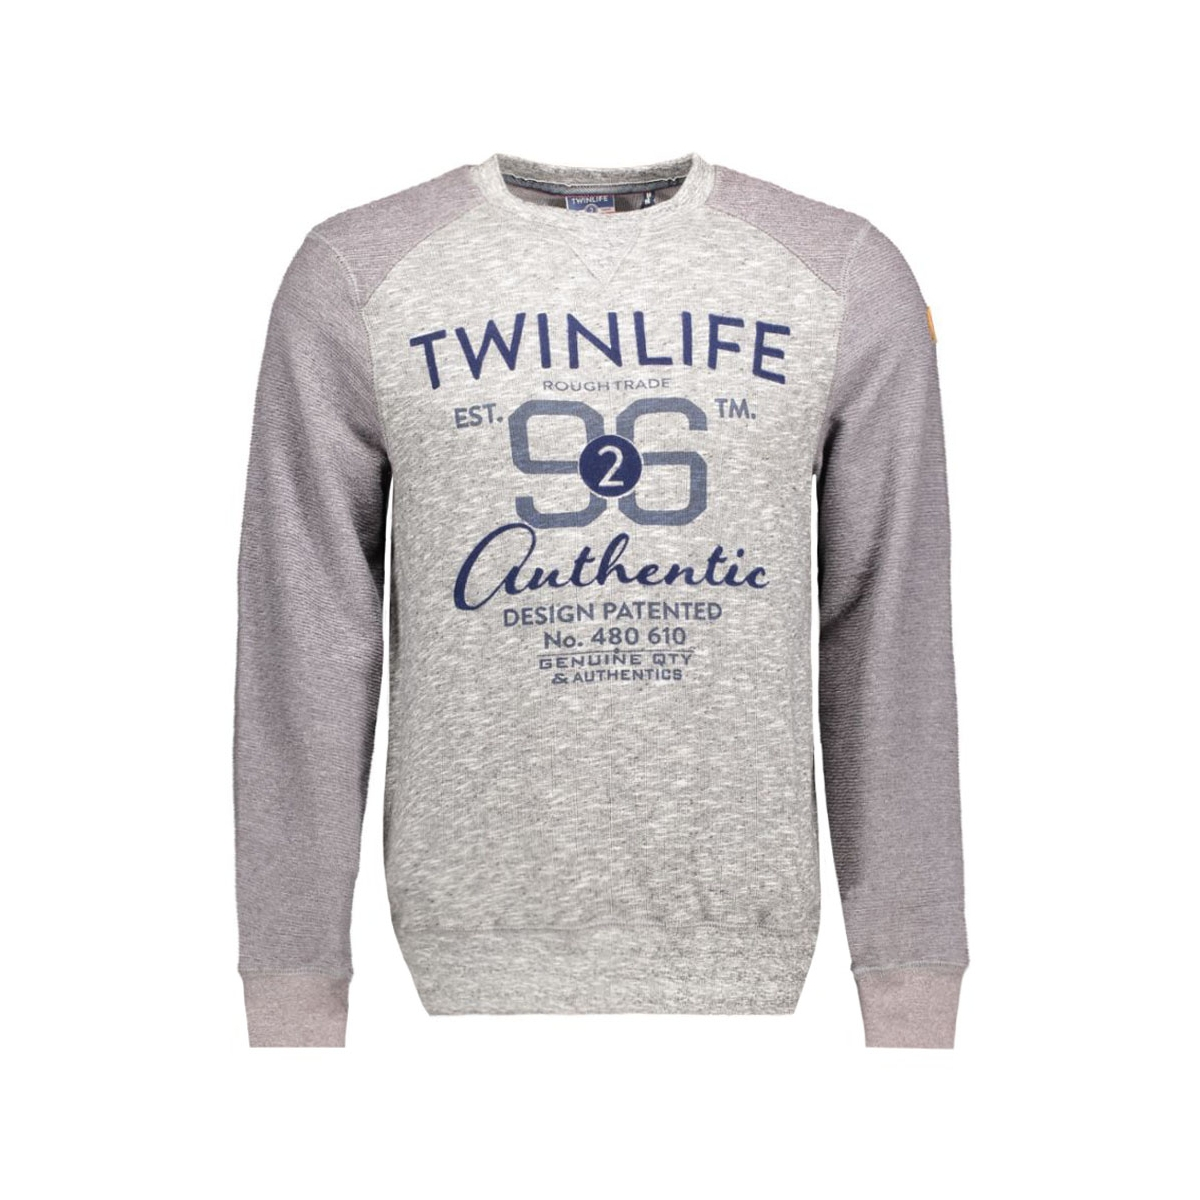 msw651431 twinlife sweater 7503